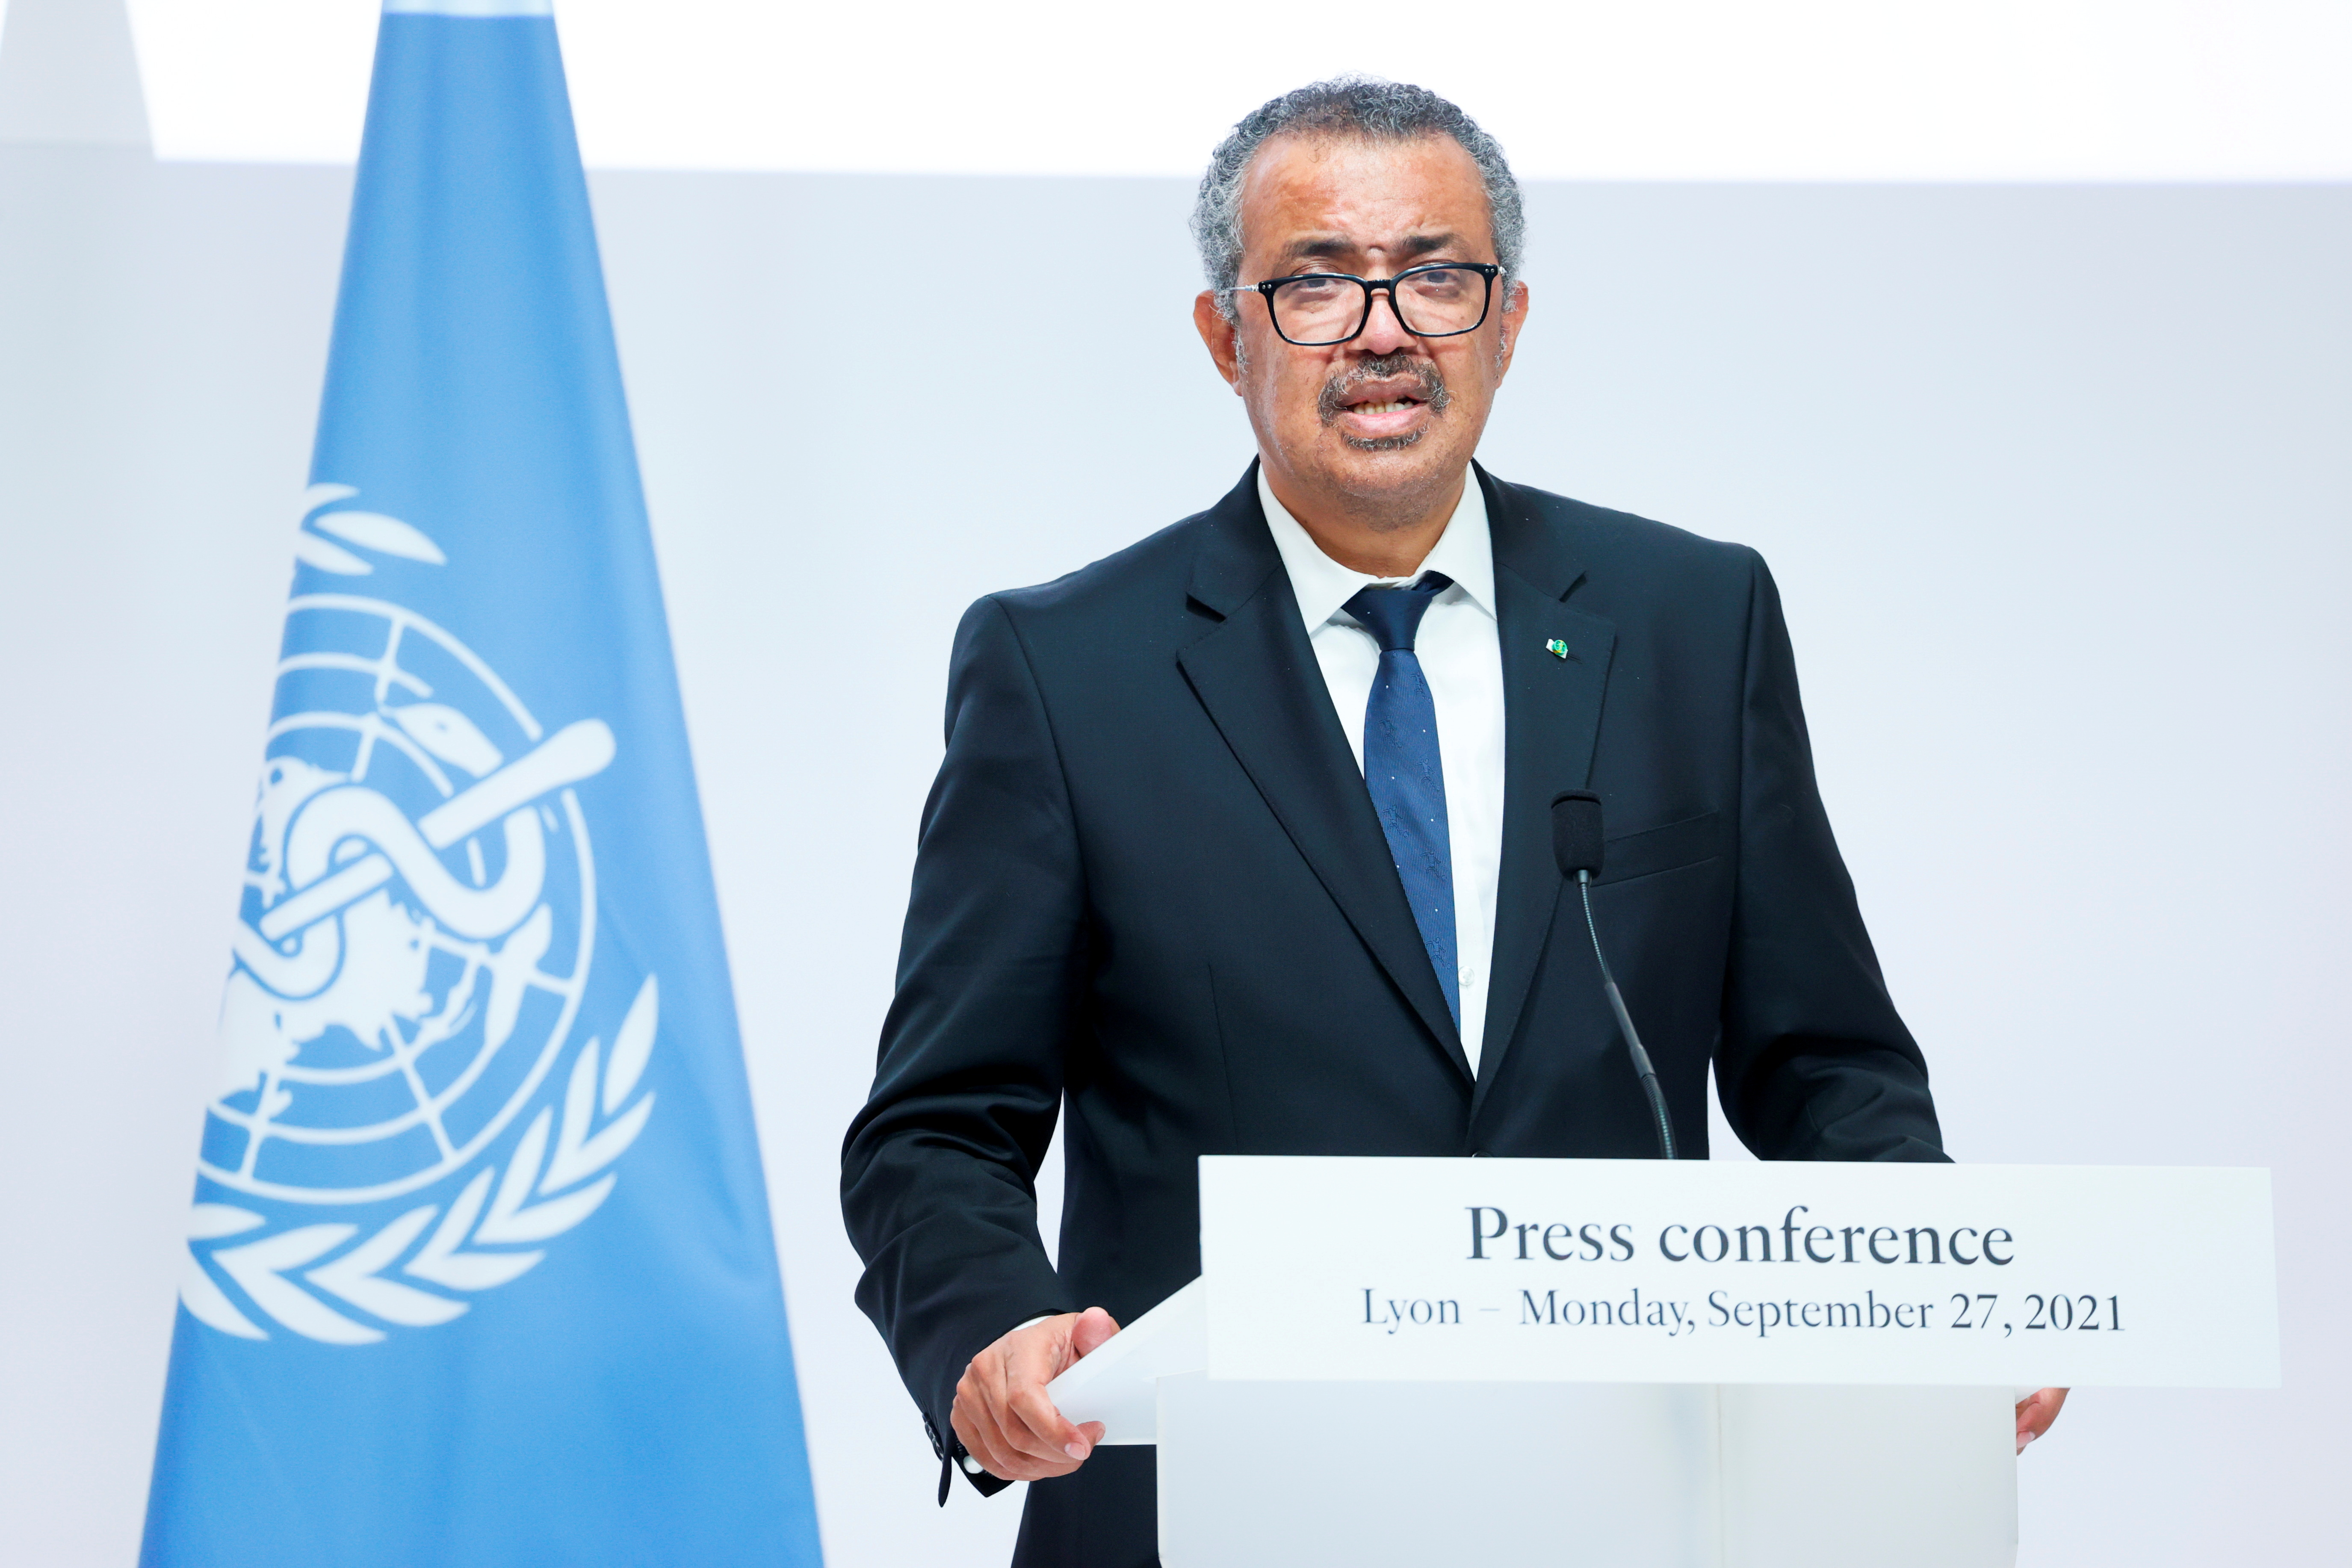 WHO Director-General Tedros Adhanom Ghebreyesus speaks during a news conference after a ceremony for the opening of the WHO Academy, in Lyon, France, September 27, 2021. REUTERS/Denis Balibouse REFILE - CORRECTING EVENT